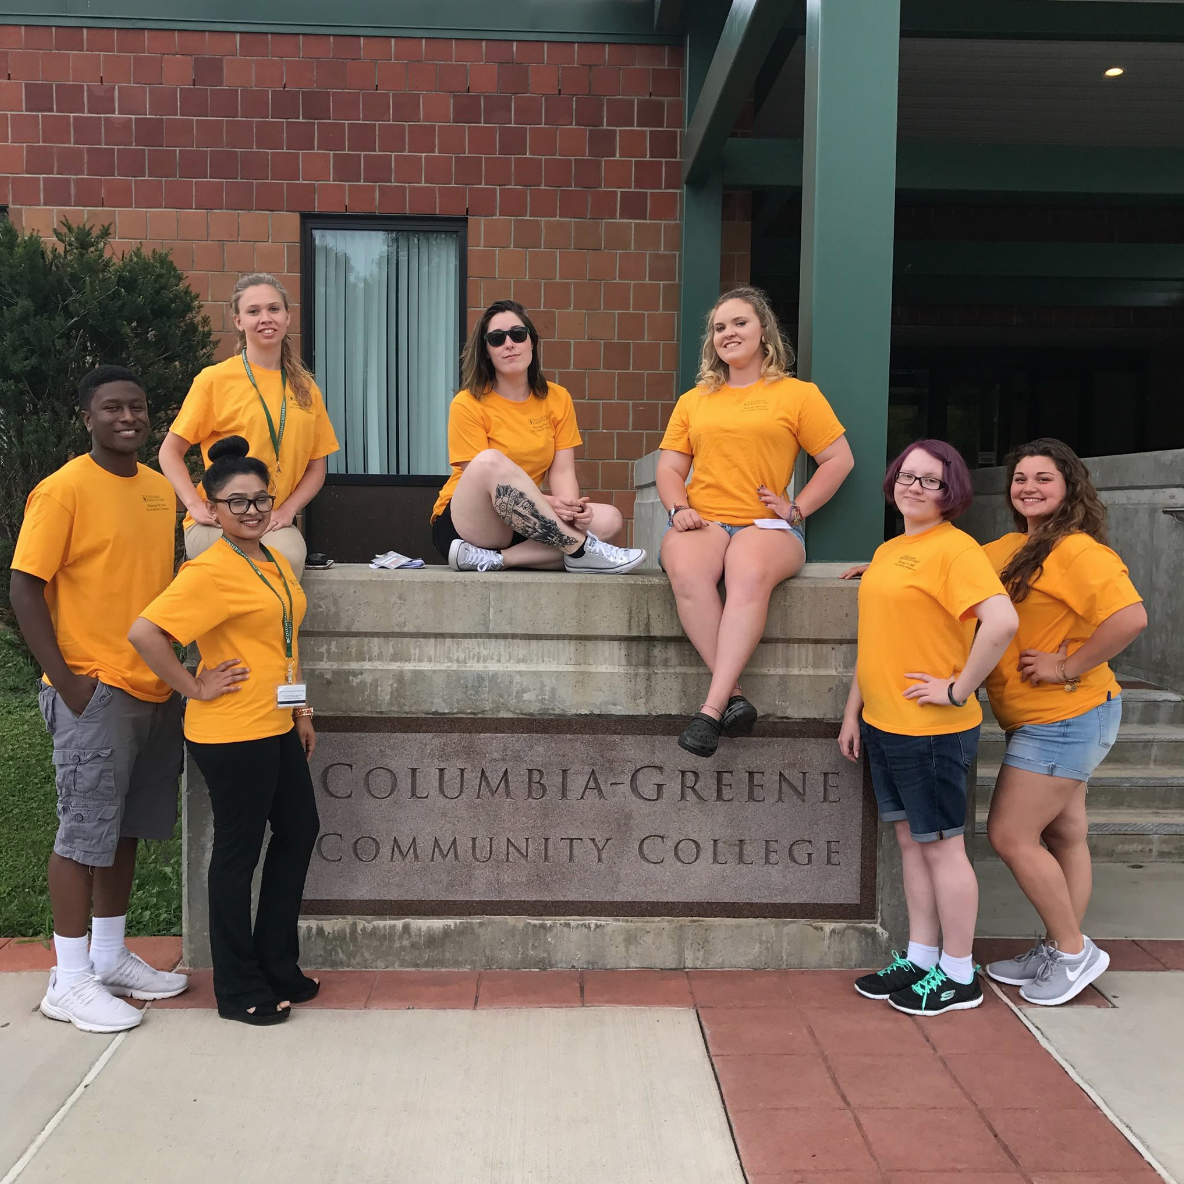 seven students in yellow shirts posed around a stone columbia-greene community college sign